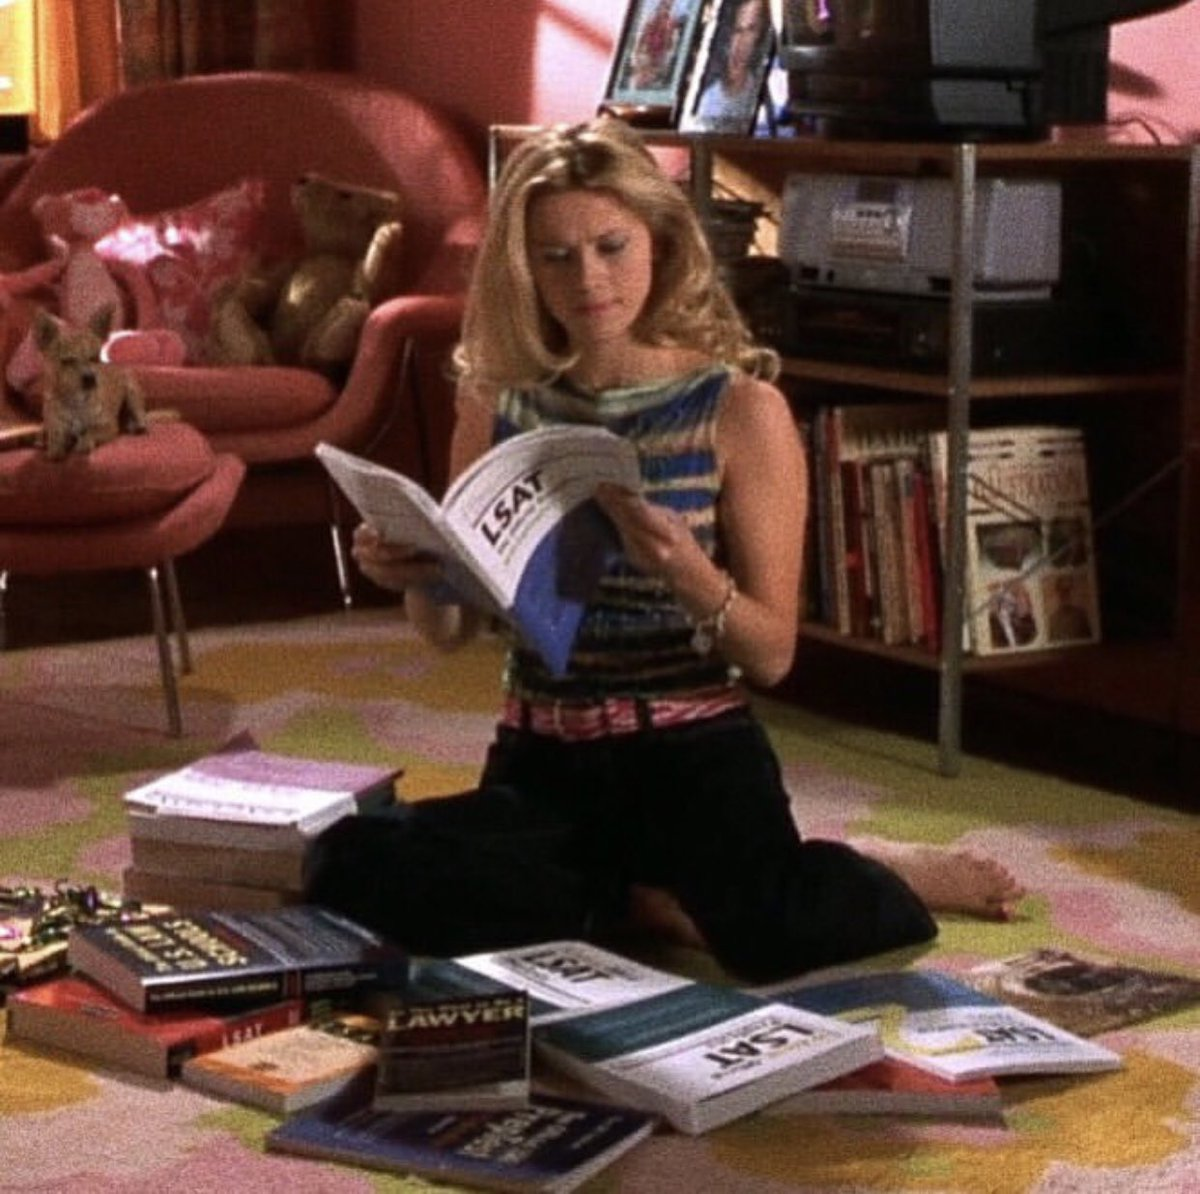 elle woods, legally blonde, book and smart